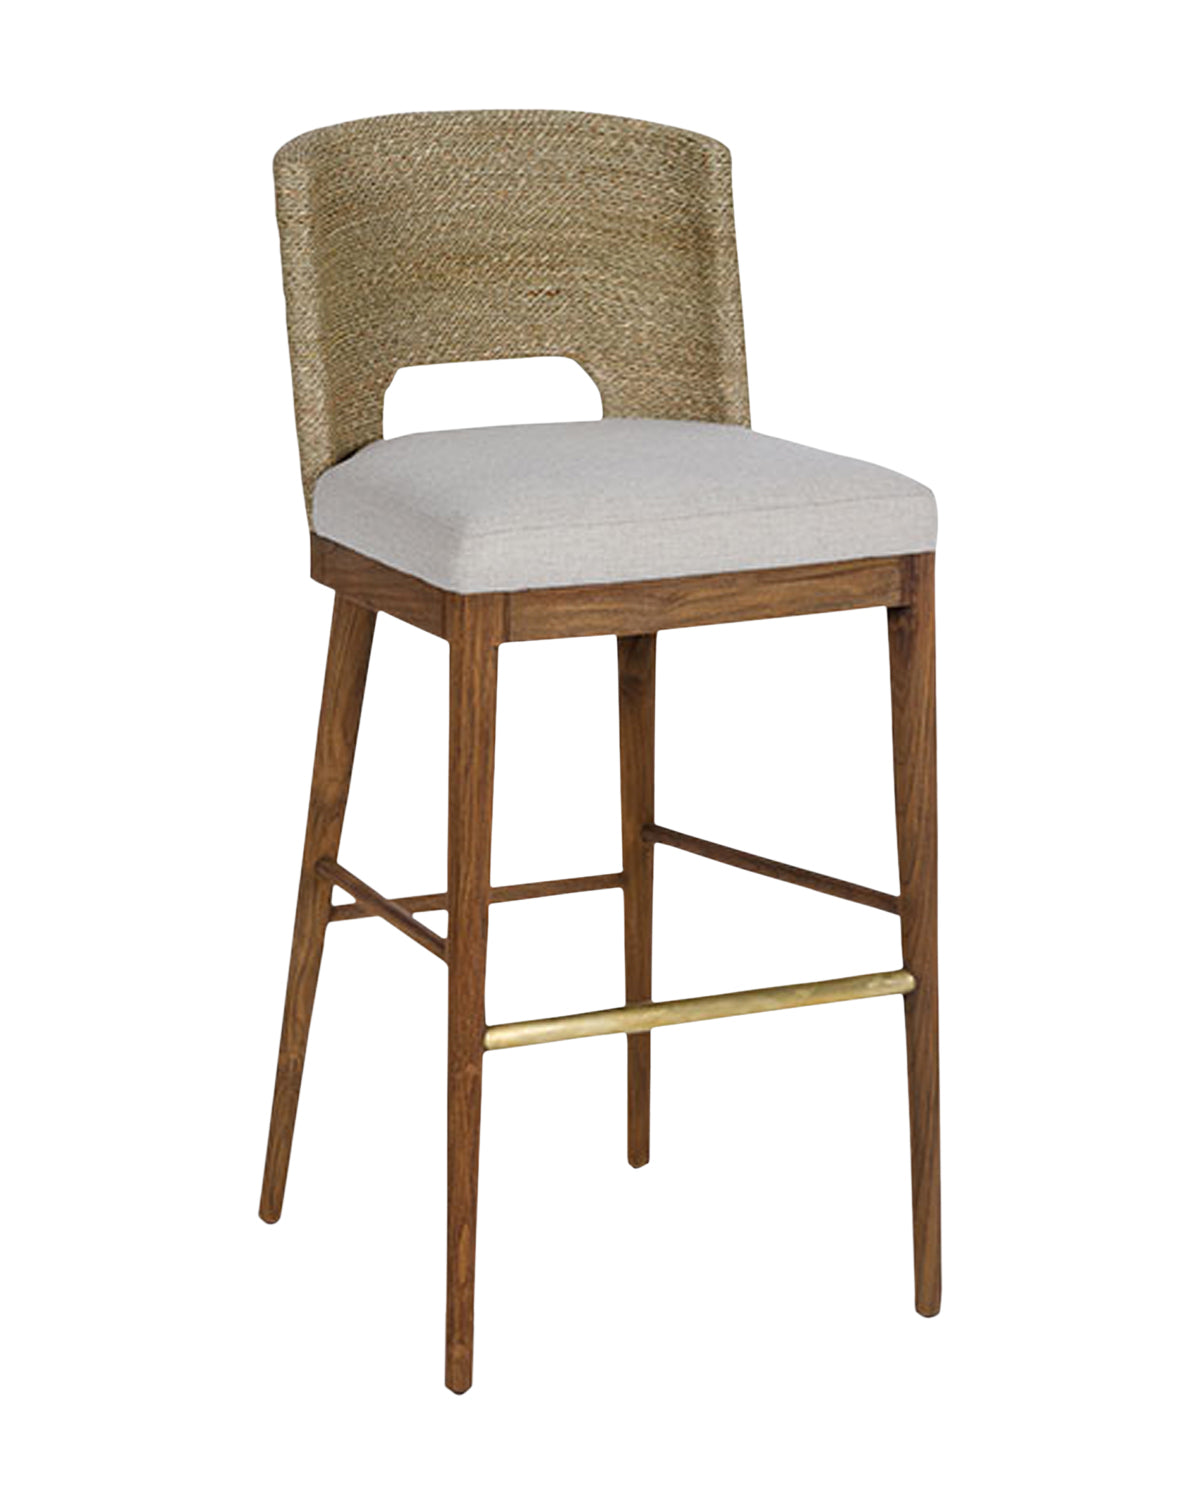 Superb Ava Seagrass Counter Stool Mcgee Co Creativecarmelina Interior Chair Design Creativecarmelinacom